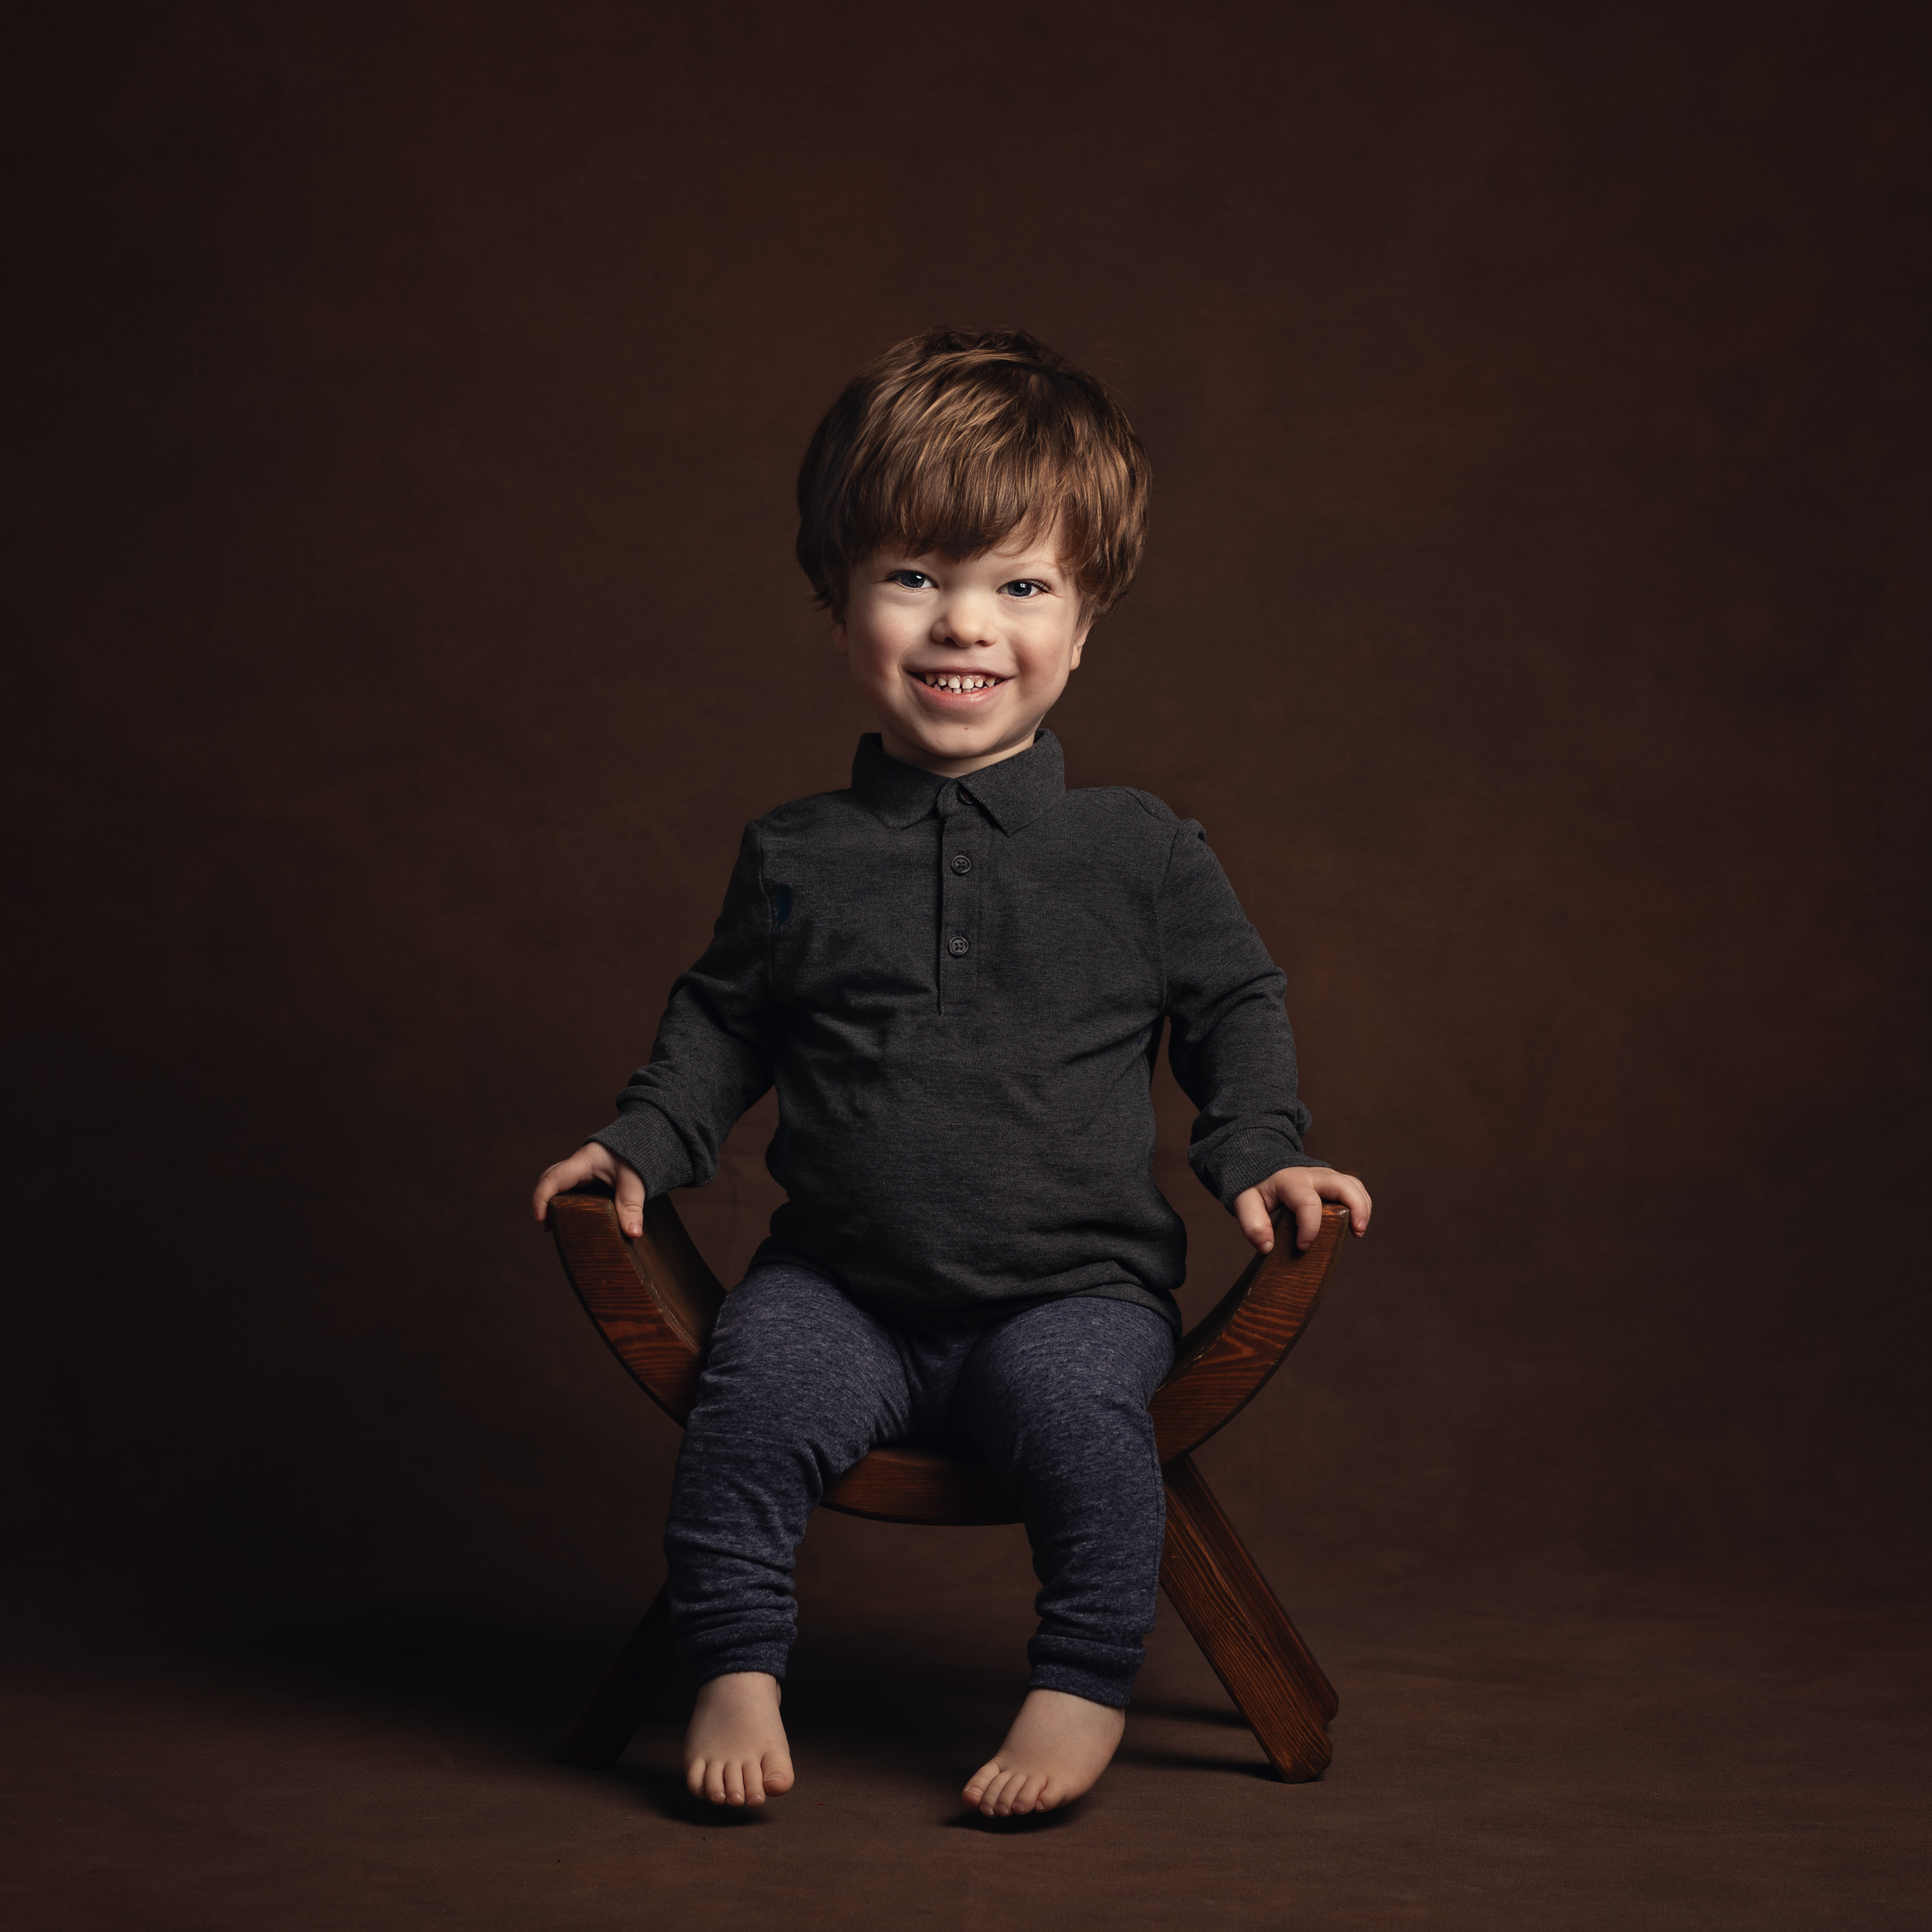 Rufus, who has achondroplasia, smiling during his portrait session in Cheshire